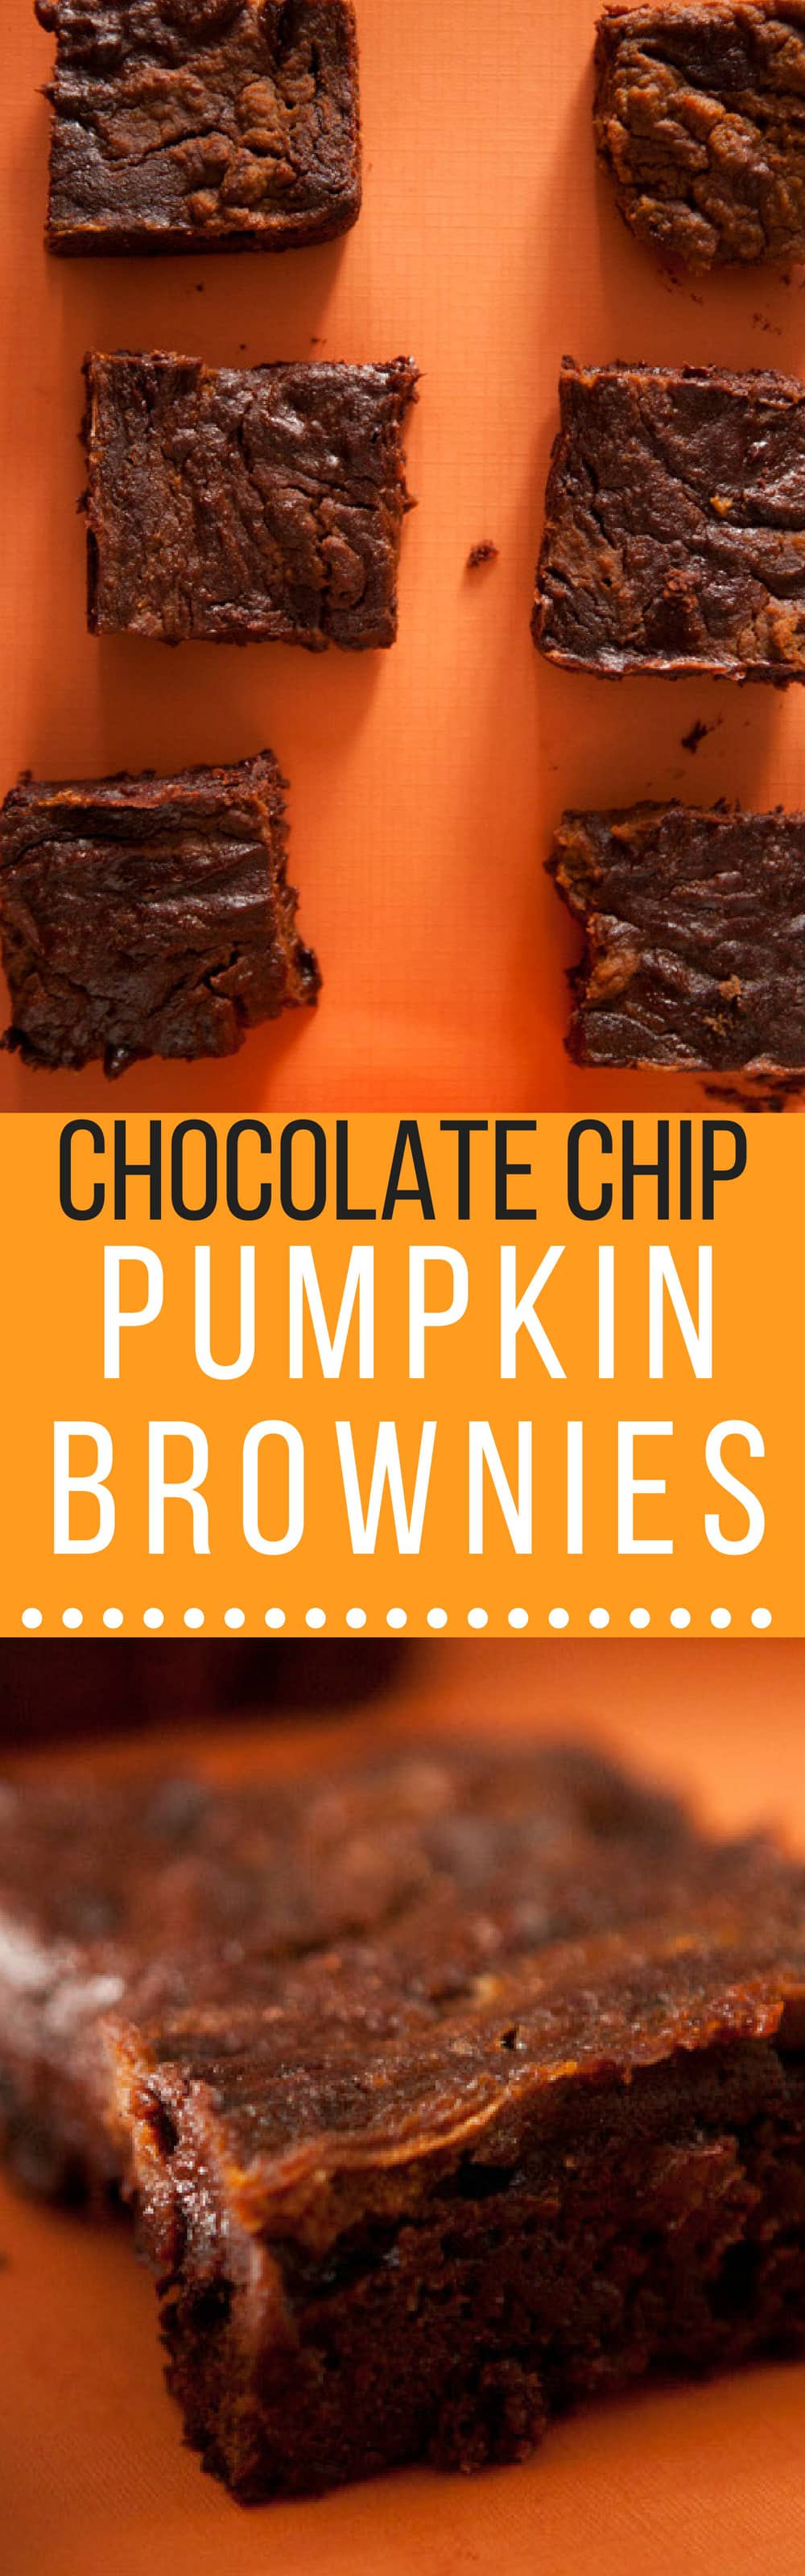 Delicious and Extra Fudgy 4 Ingredient Pumpkin Brownies.  If you're looking for quick Halloween recipes, then this recipe tops my list of easy pumpkin recipes. All you need is a box of brownie mix, pumpkin puree, pumpkin pie spice, and chocolate chips!